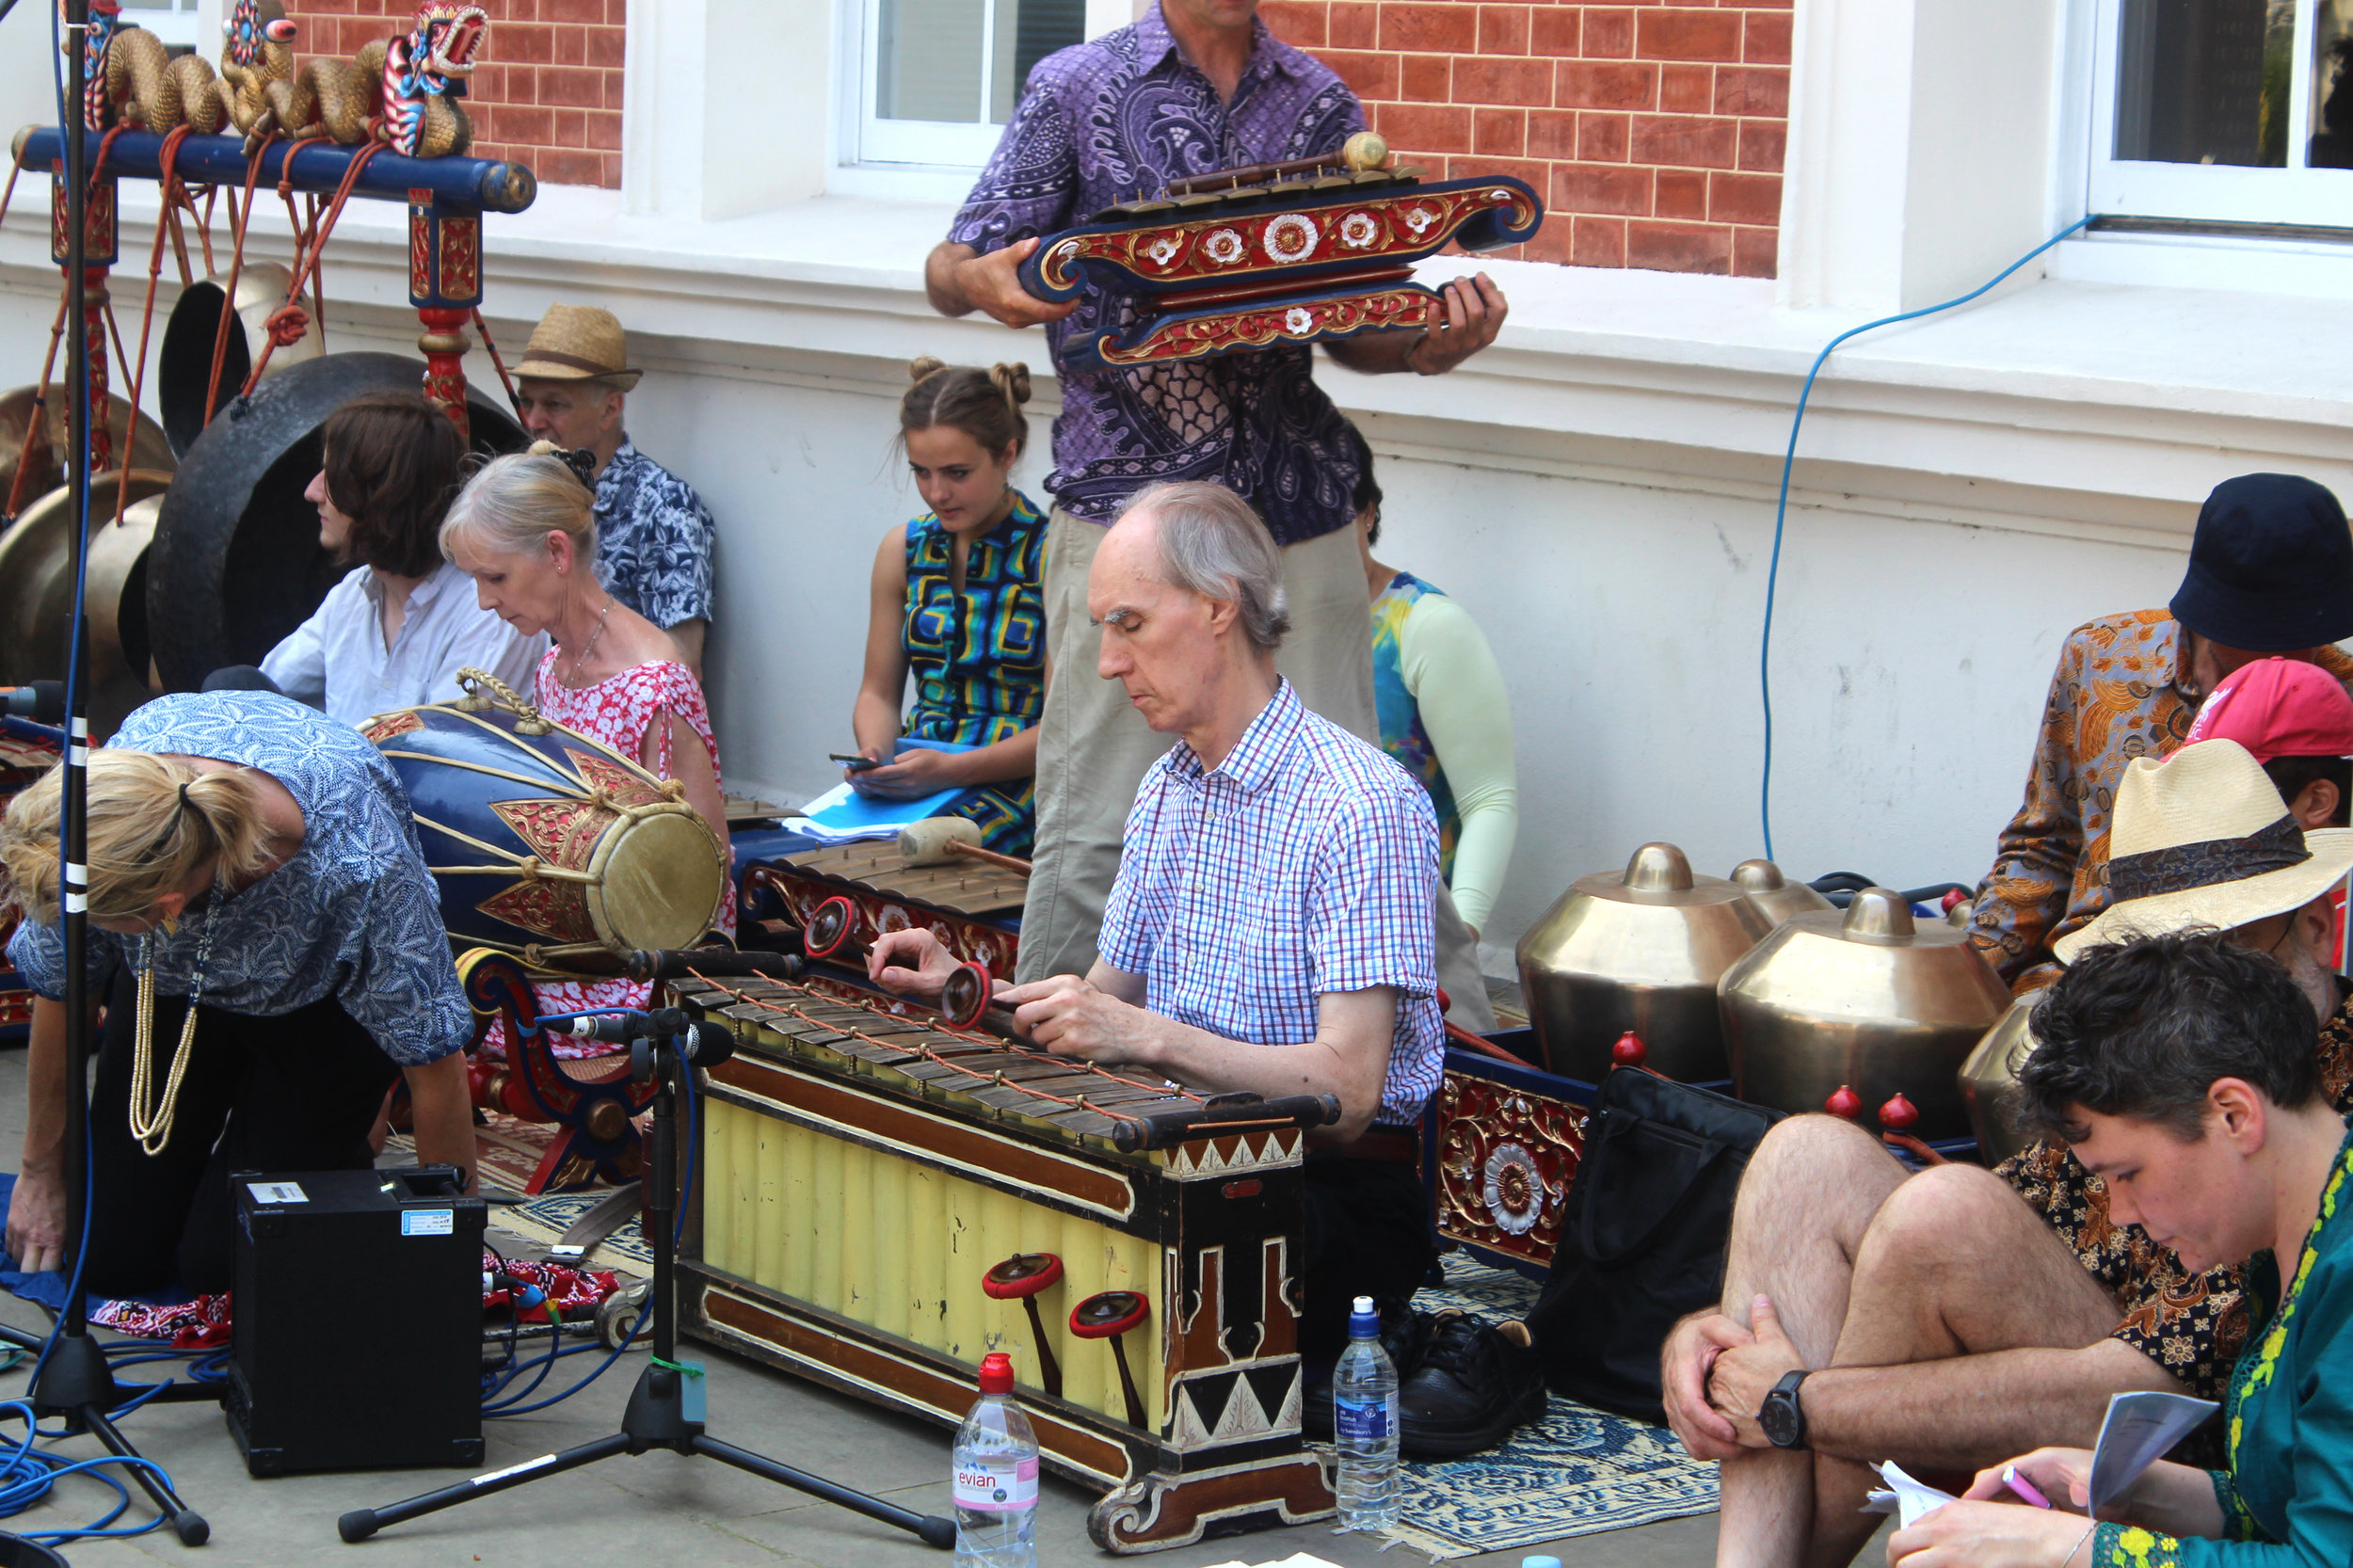 LPD2017_05_Gamelan_Ensemble_Photograph-Richard_Hards_IMG_9763.JPG